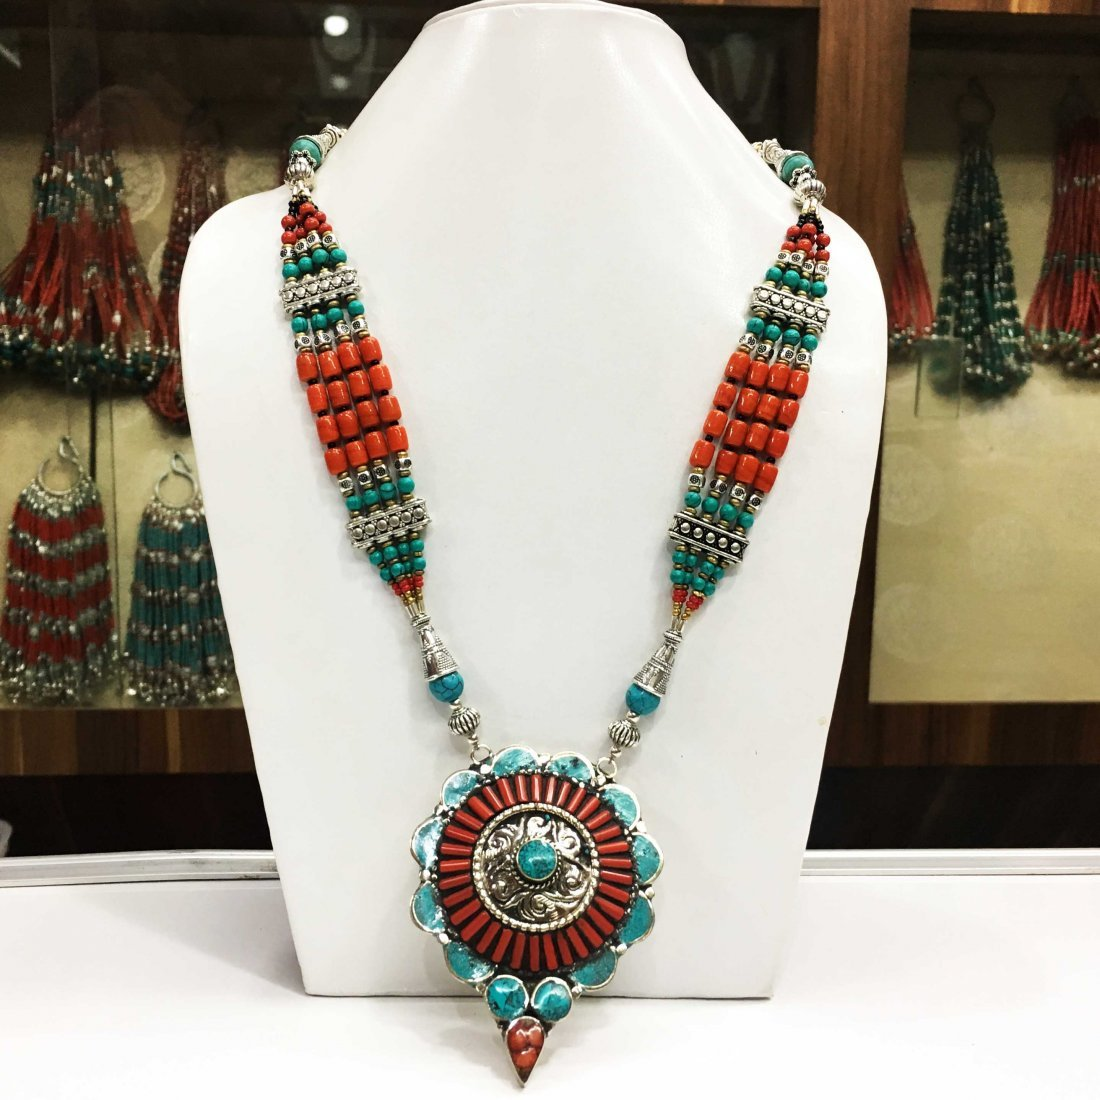 Genuine Tibetan Handmade Nepali Necklace